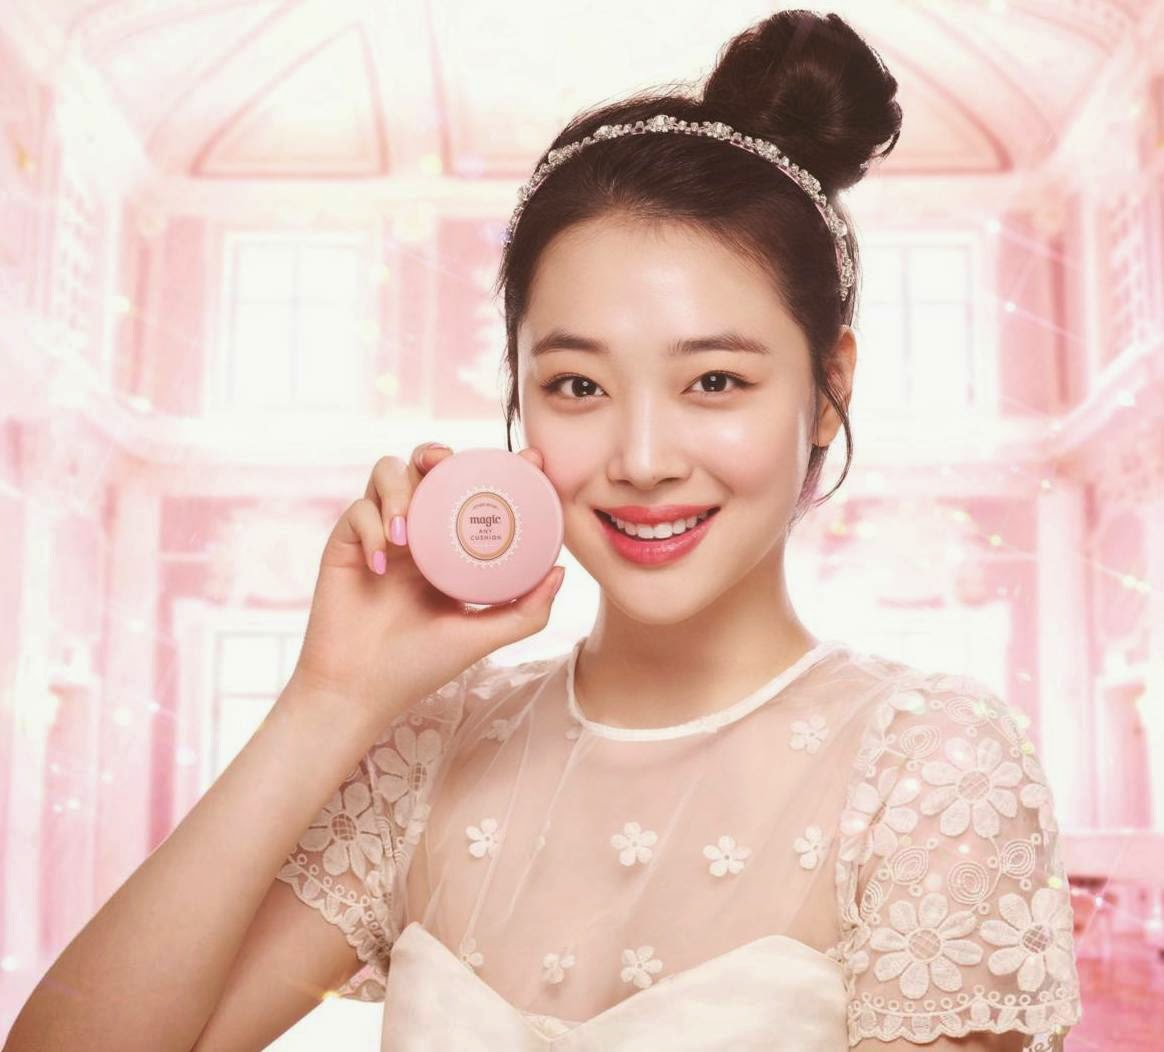 sulli, Etude House Precious Mineral Magic Any Cushion, Etude House, Precious Mineral, Magic Any Cushion, makeup, sulli, k beauty, k makeup, korean makeup trend, pink, mint & peach cushion colours, 4 different types of base makeup look